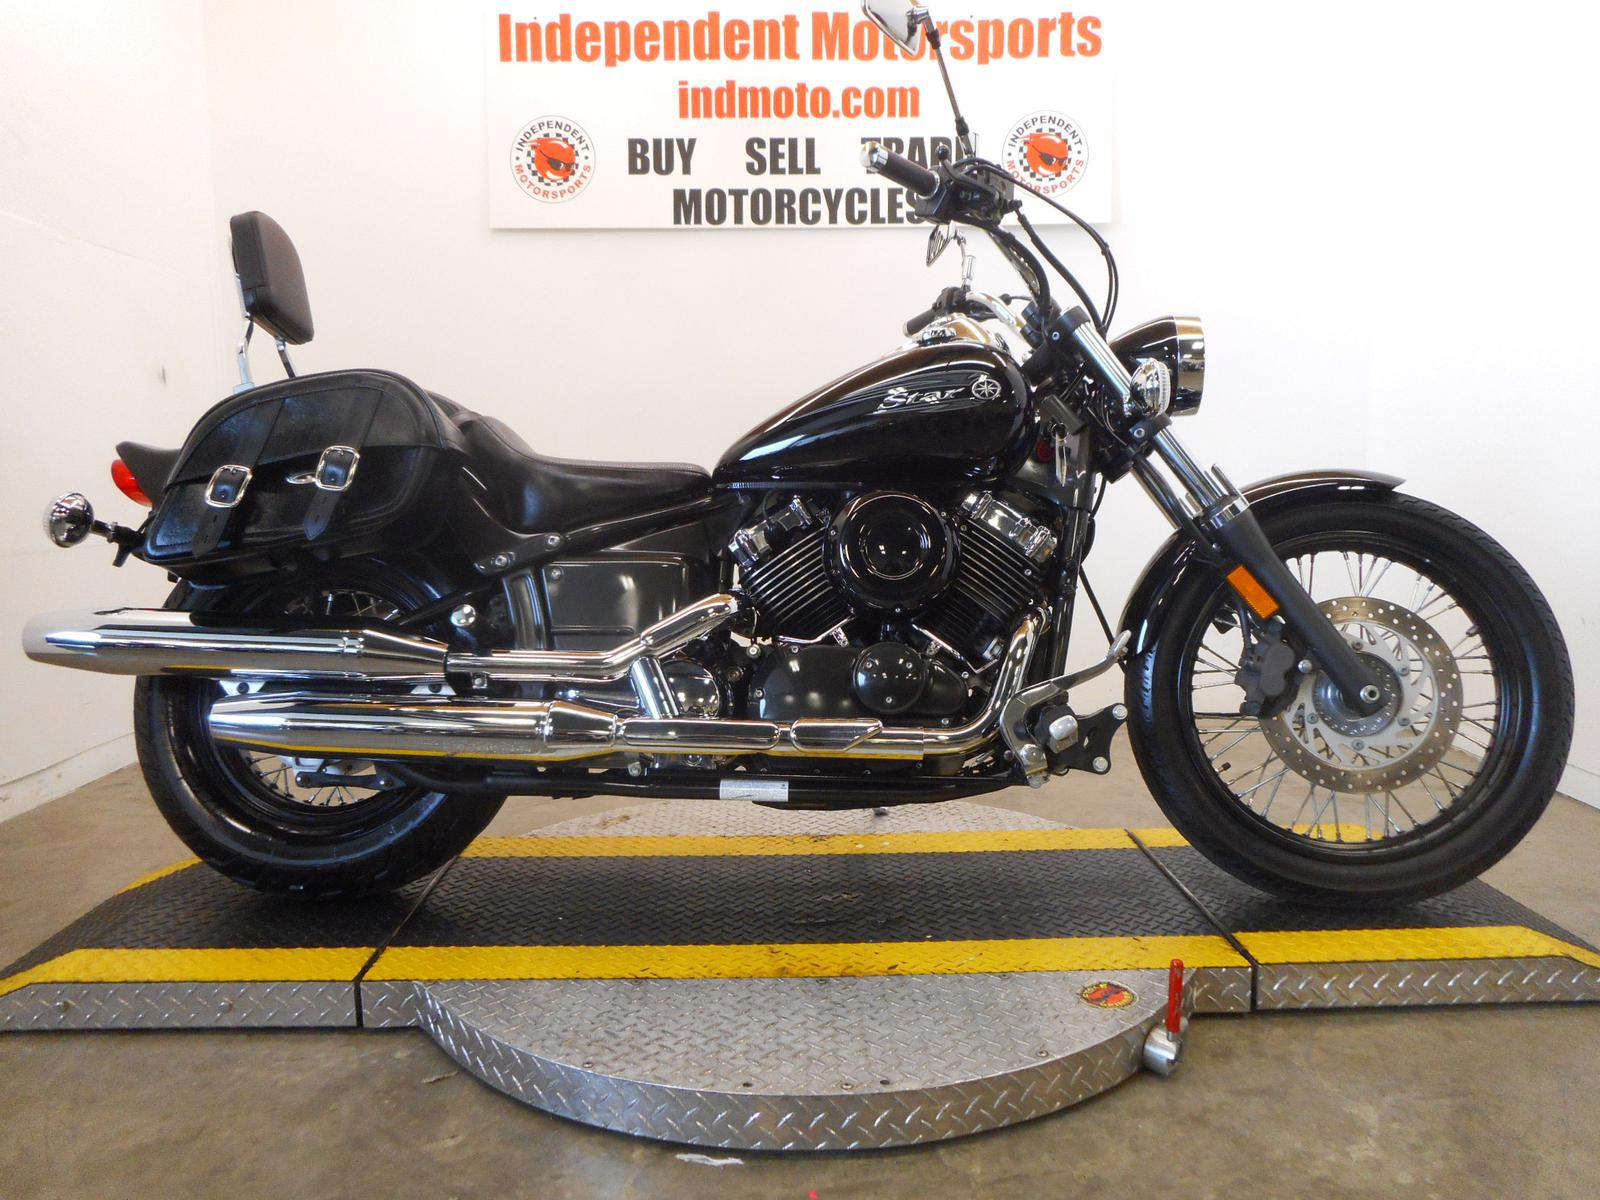 cycle search international en motorcycles cycle search2009 yamaha v star 650 xvs650 xvs entry level used motorcycle columbus ohio buy sell trade